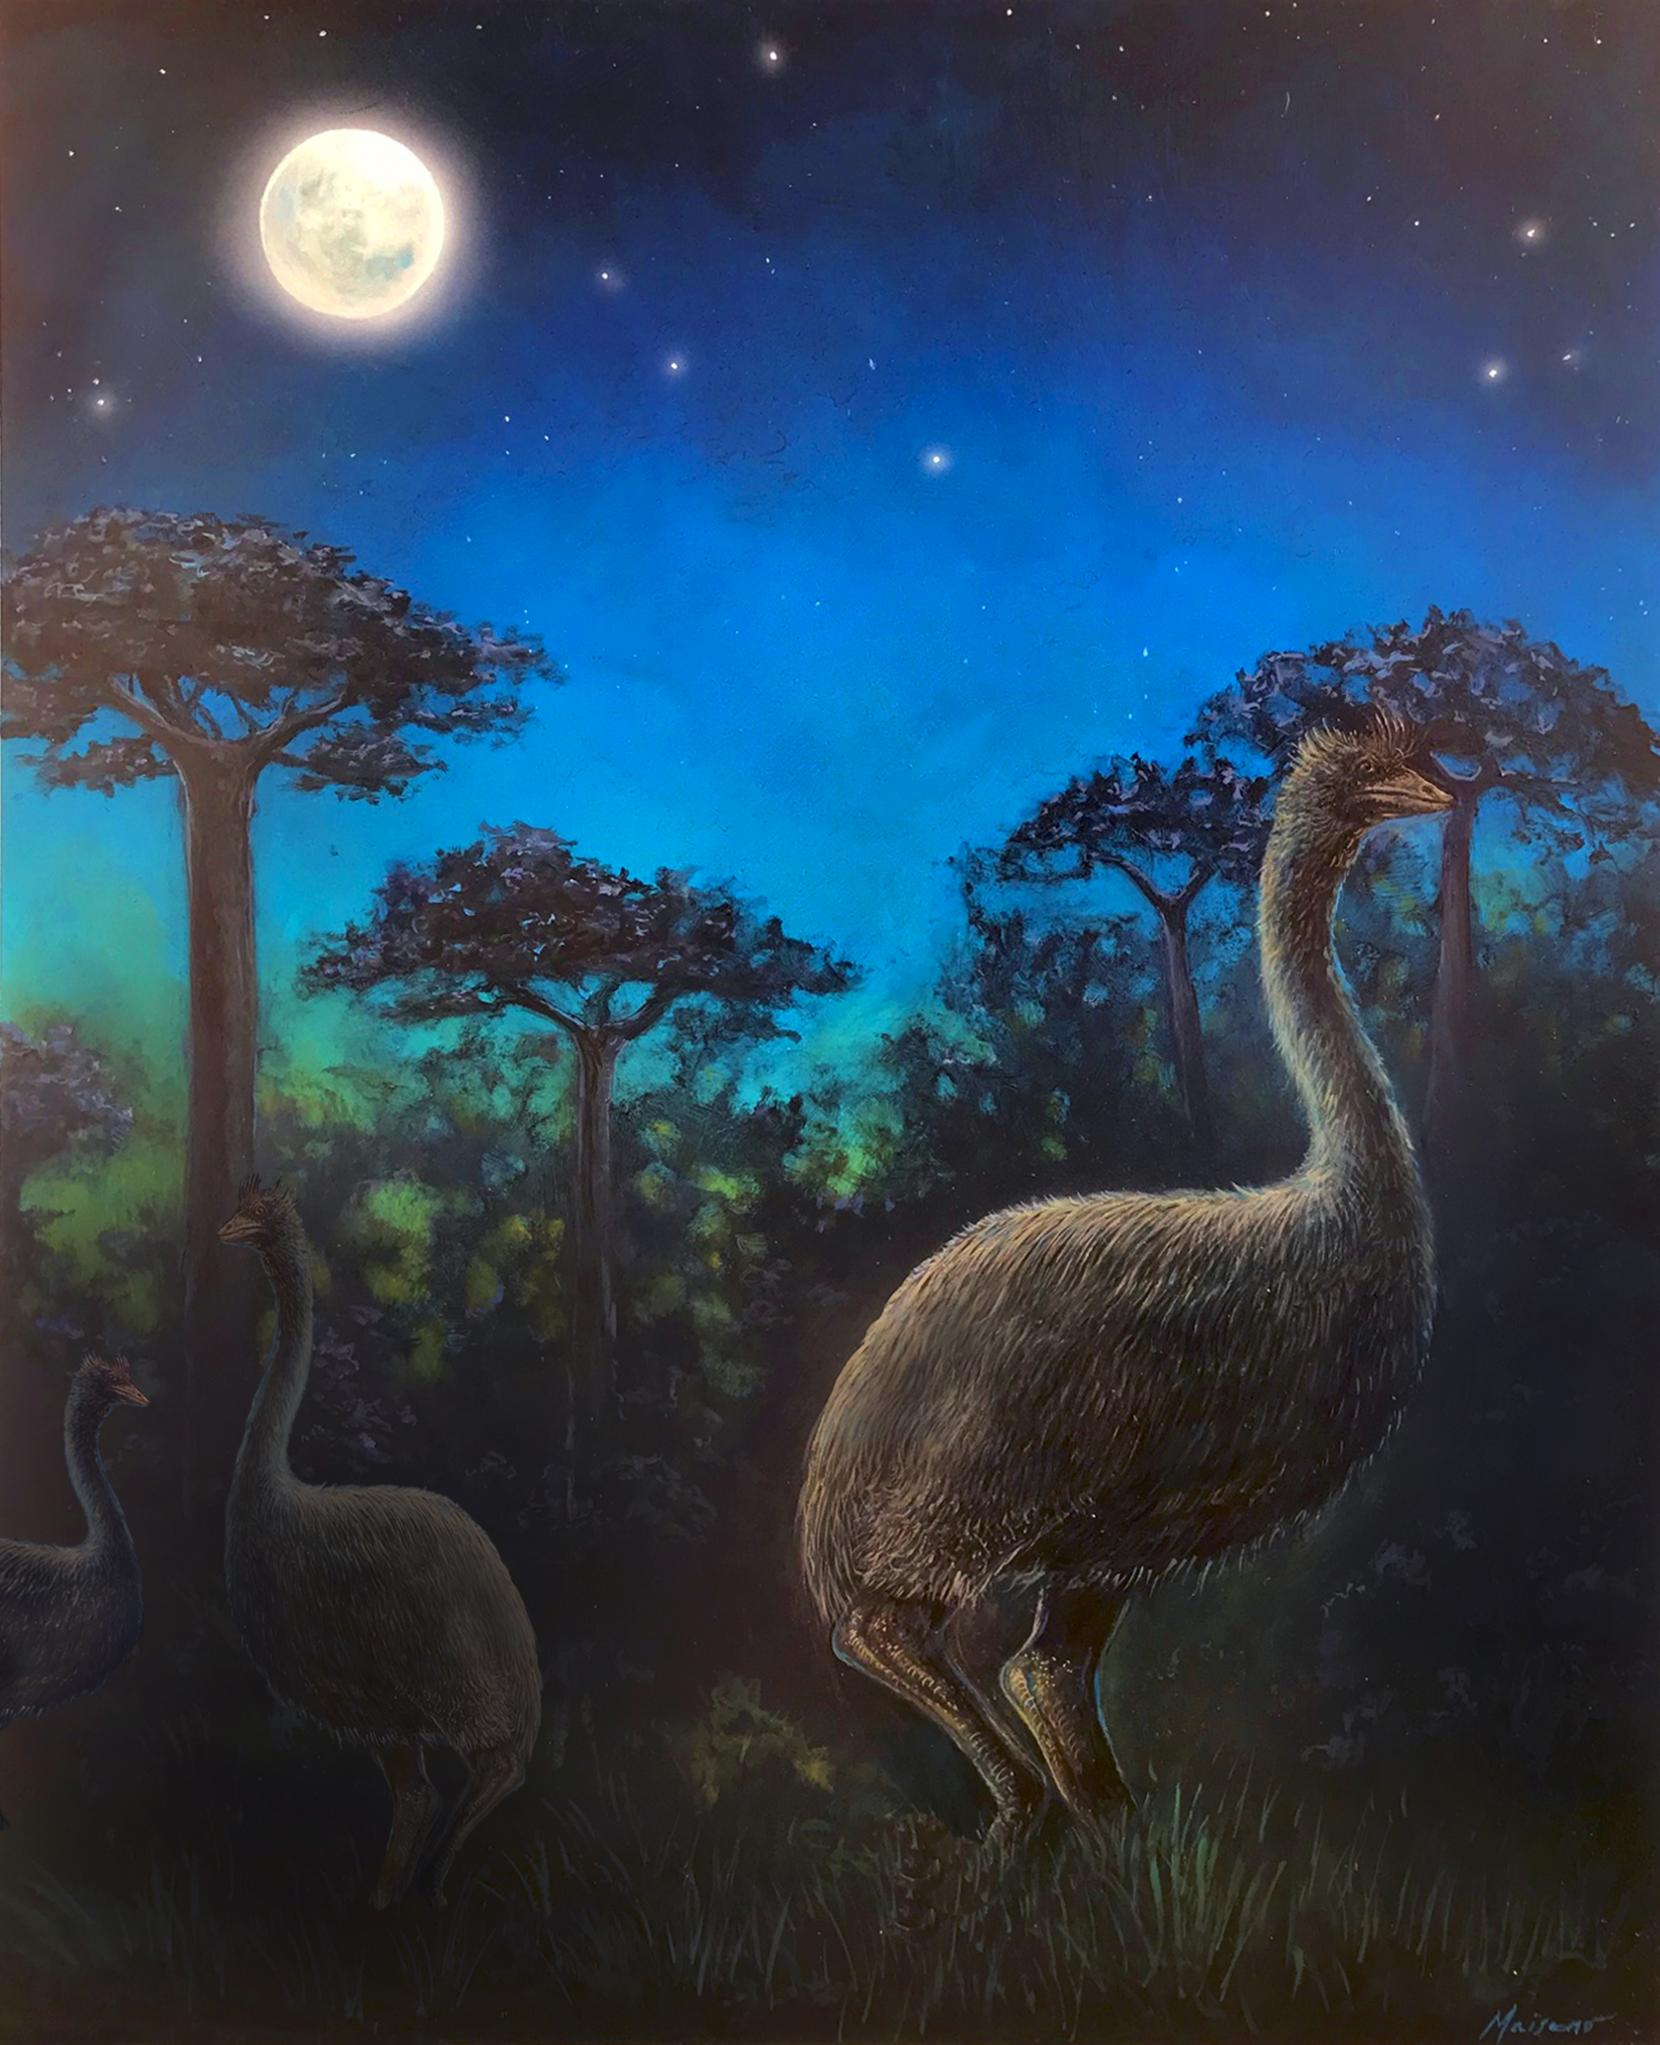 An artist's rendition of the now-extinct elephant bird.